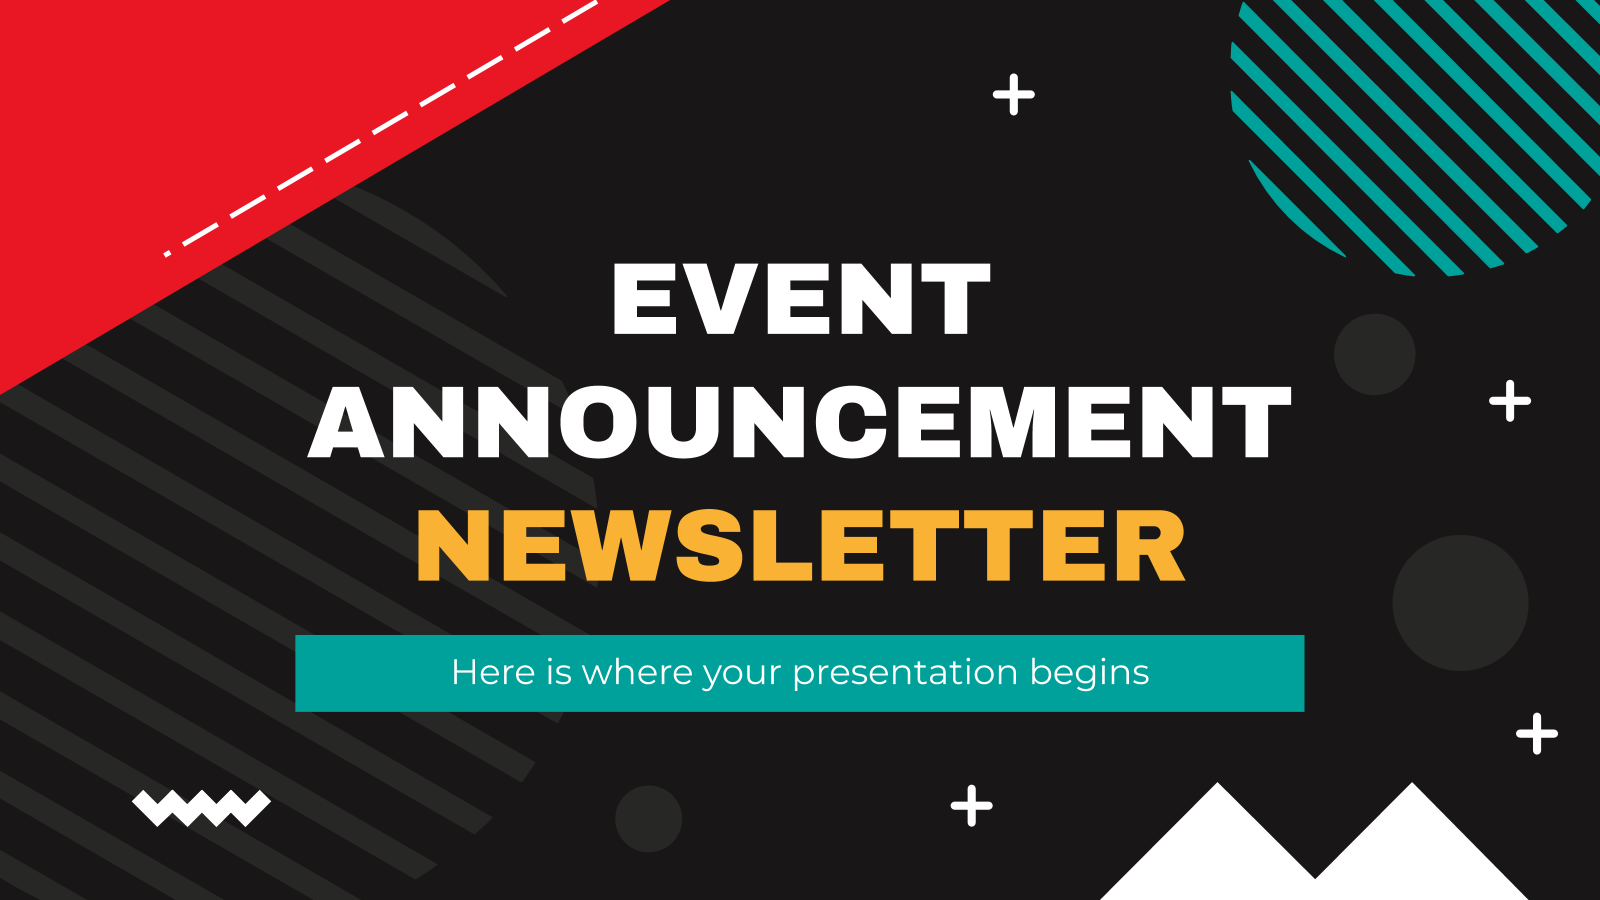 Event Announcement Newsletter presentation template